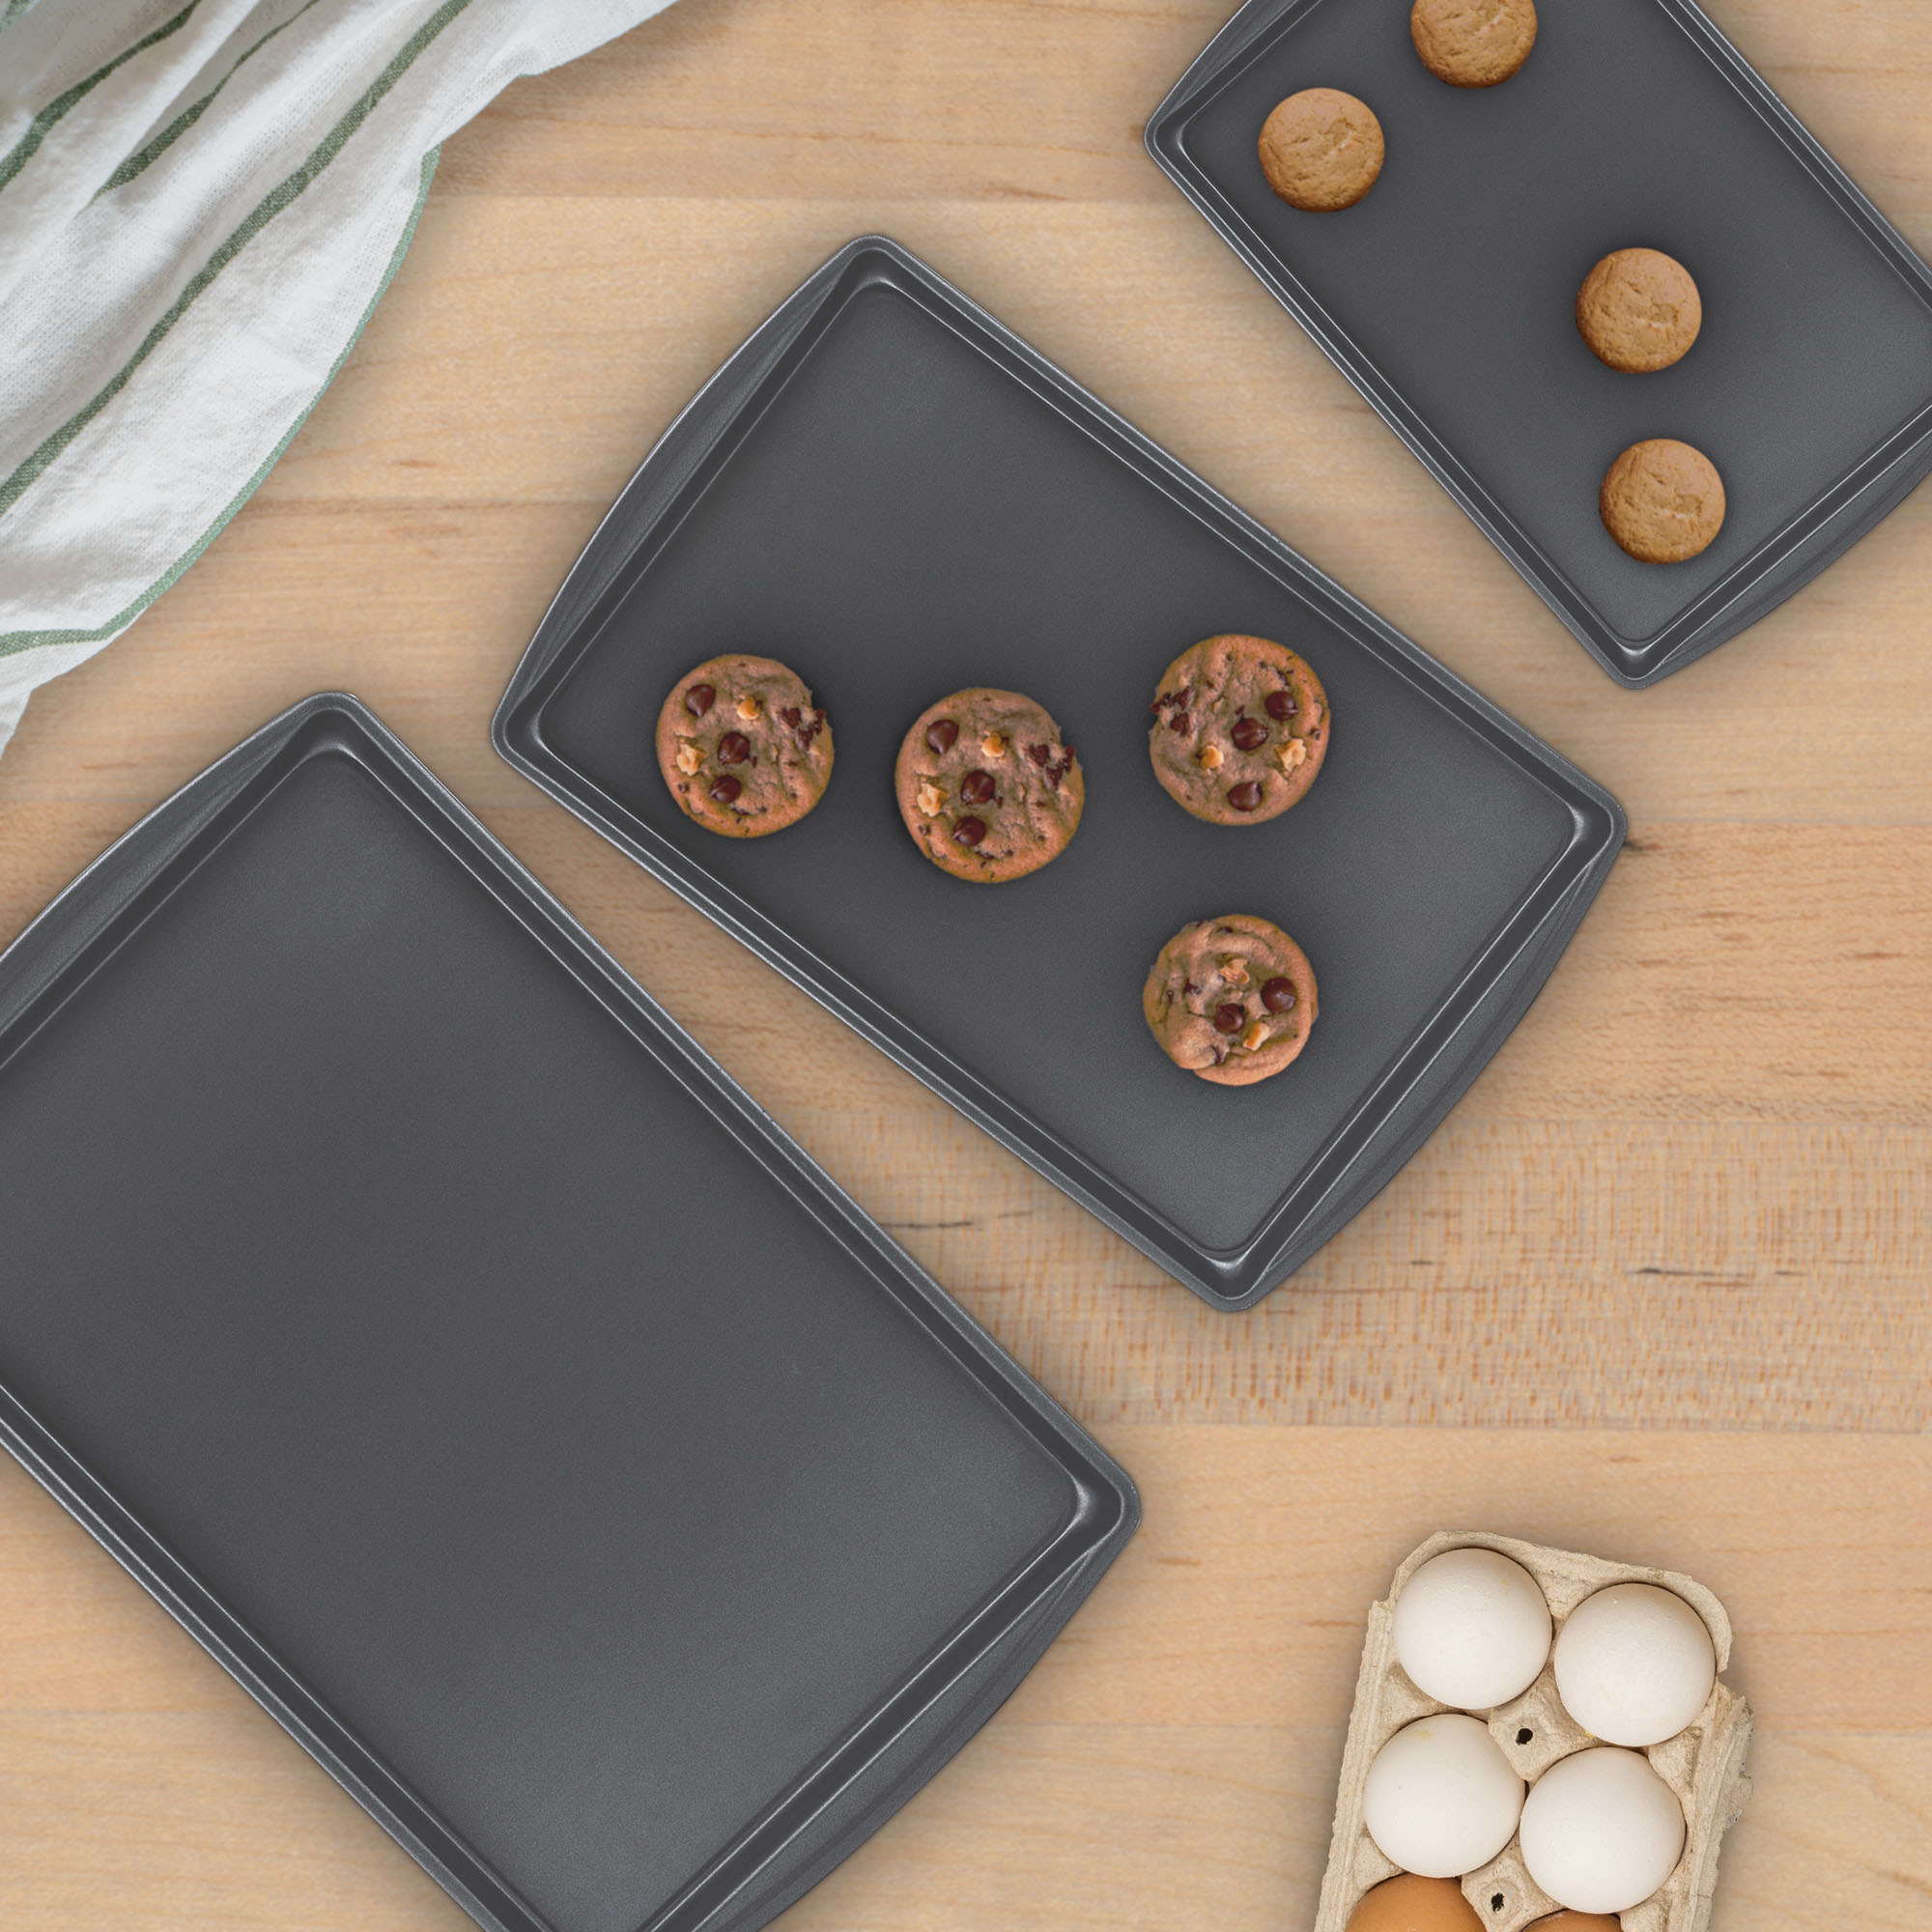 three sheet pans on a counter